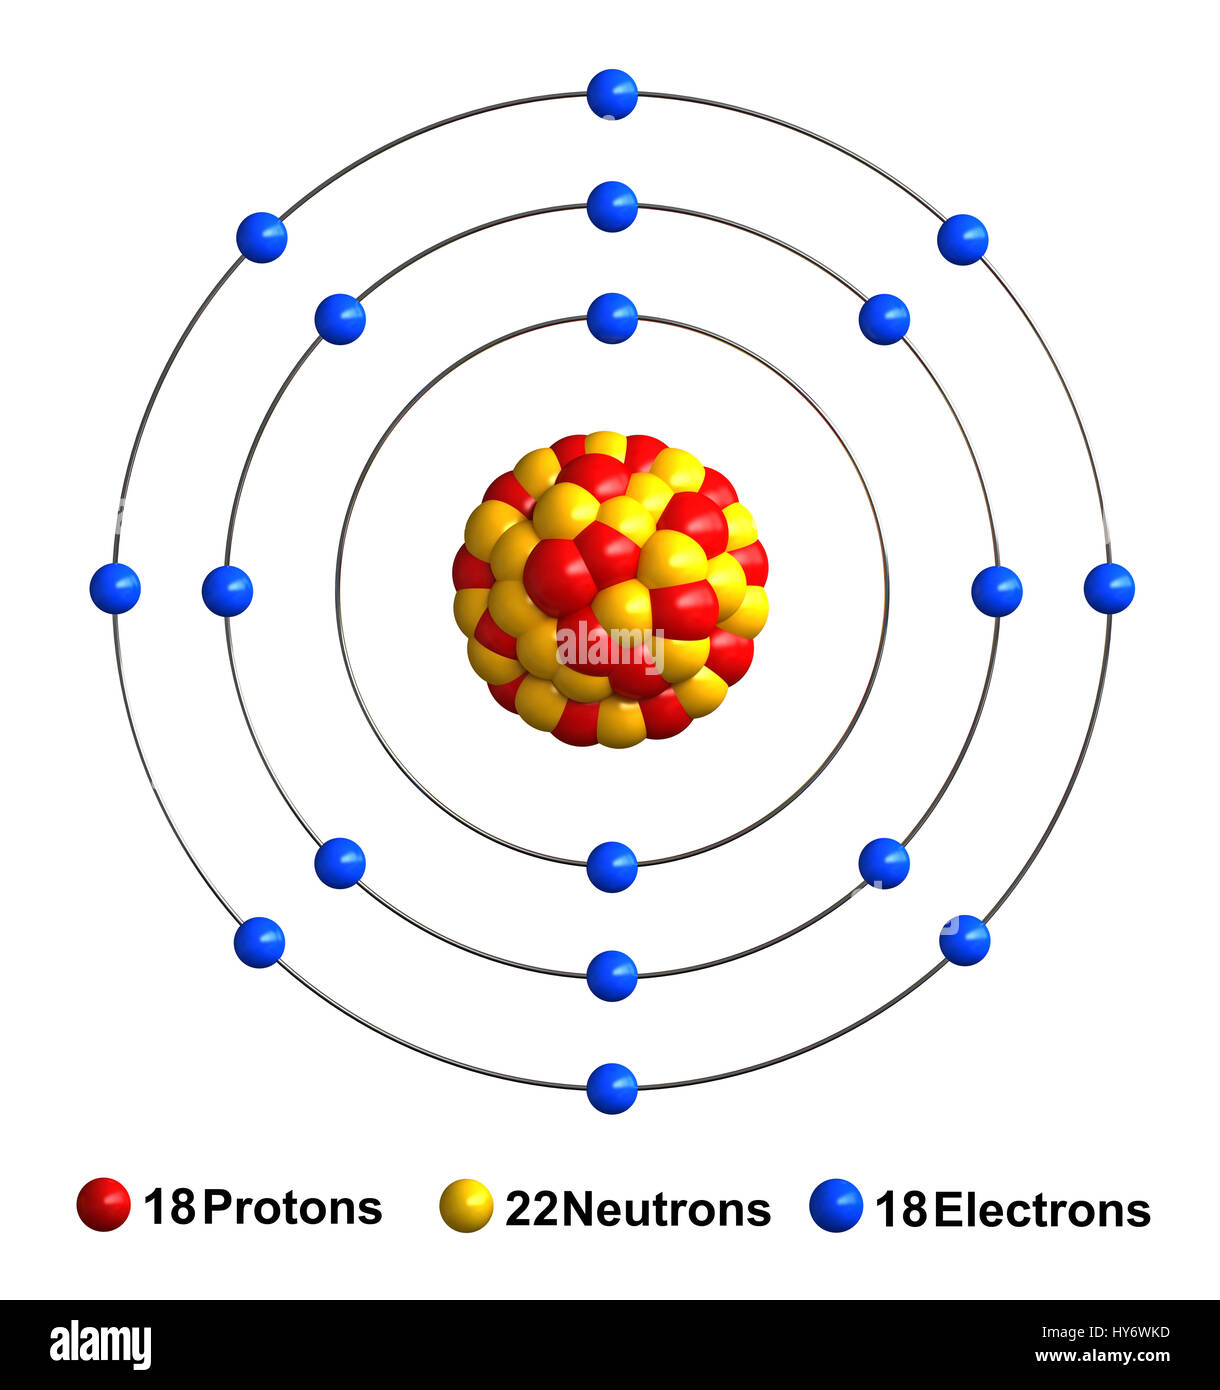 3d render of atom structure of argon isolated over white background 3d render of atom structure of argon isolated over white background protons are represented as red spheres neutron as yellow spheres electrons as bl ccuart Images